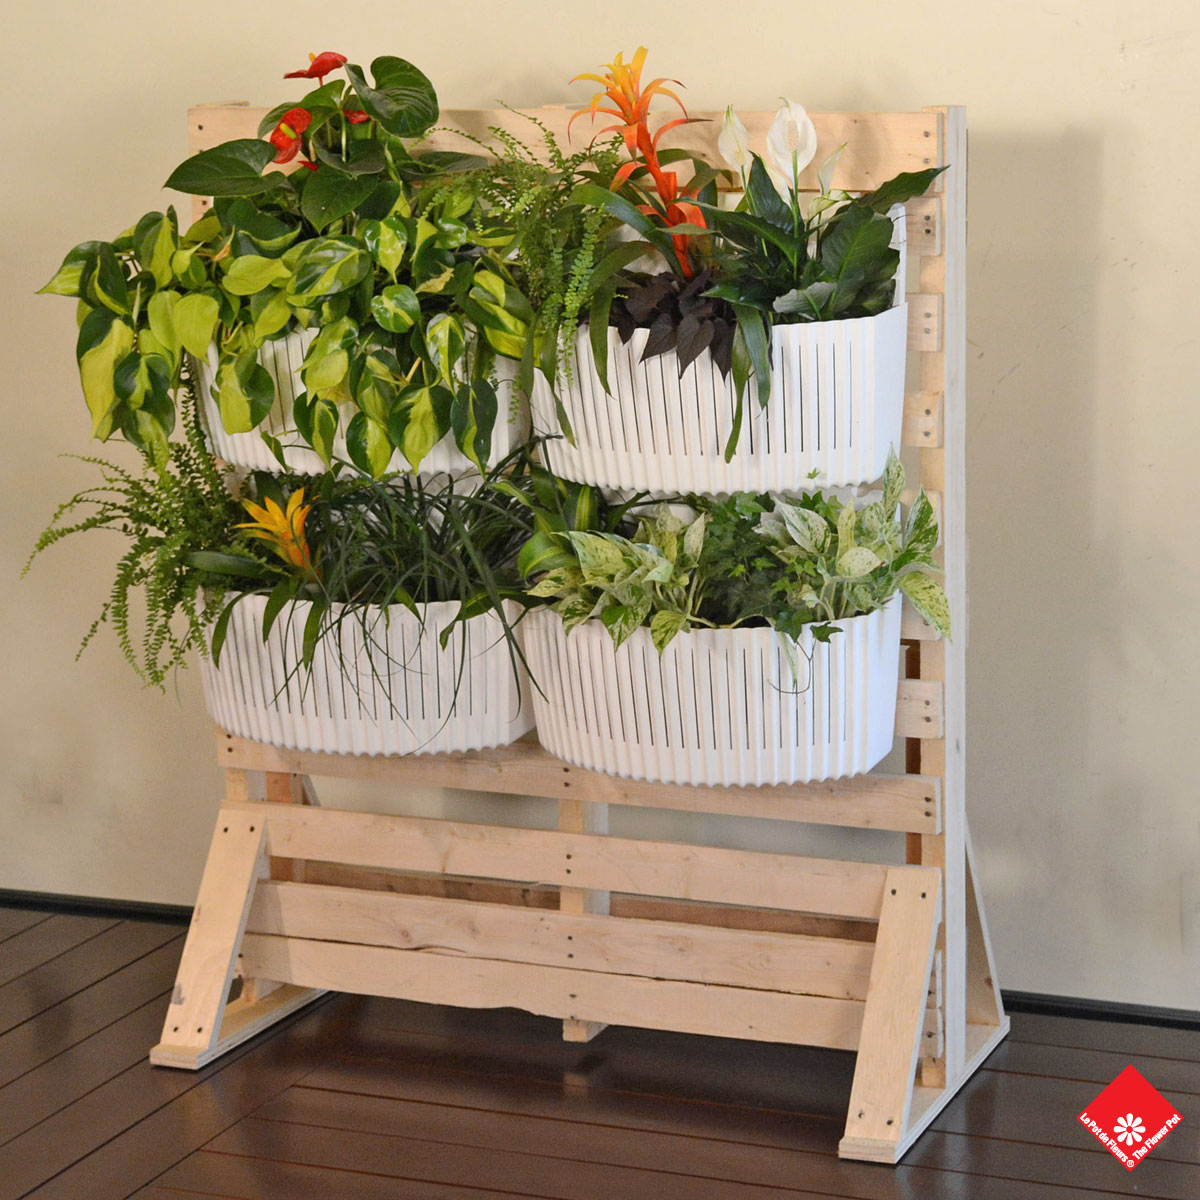 ... Put Multiple Planters Together To Make Up You Own Living Wall In Your  Montreal Home Today